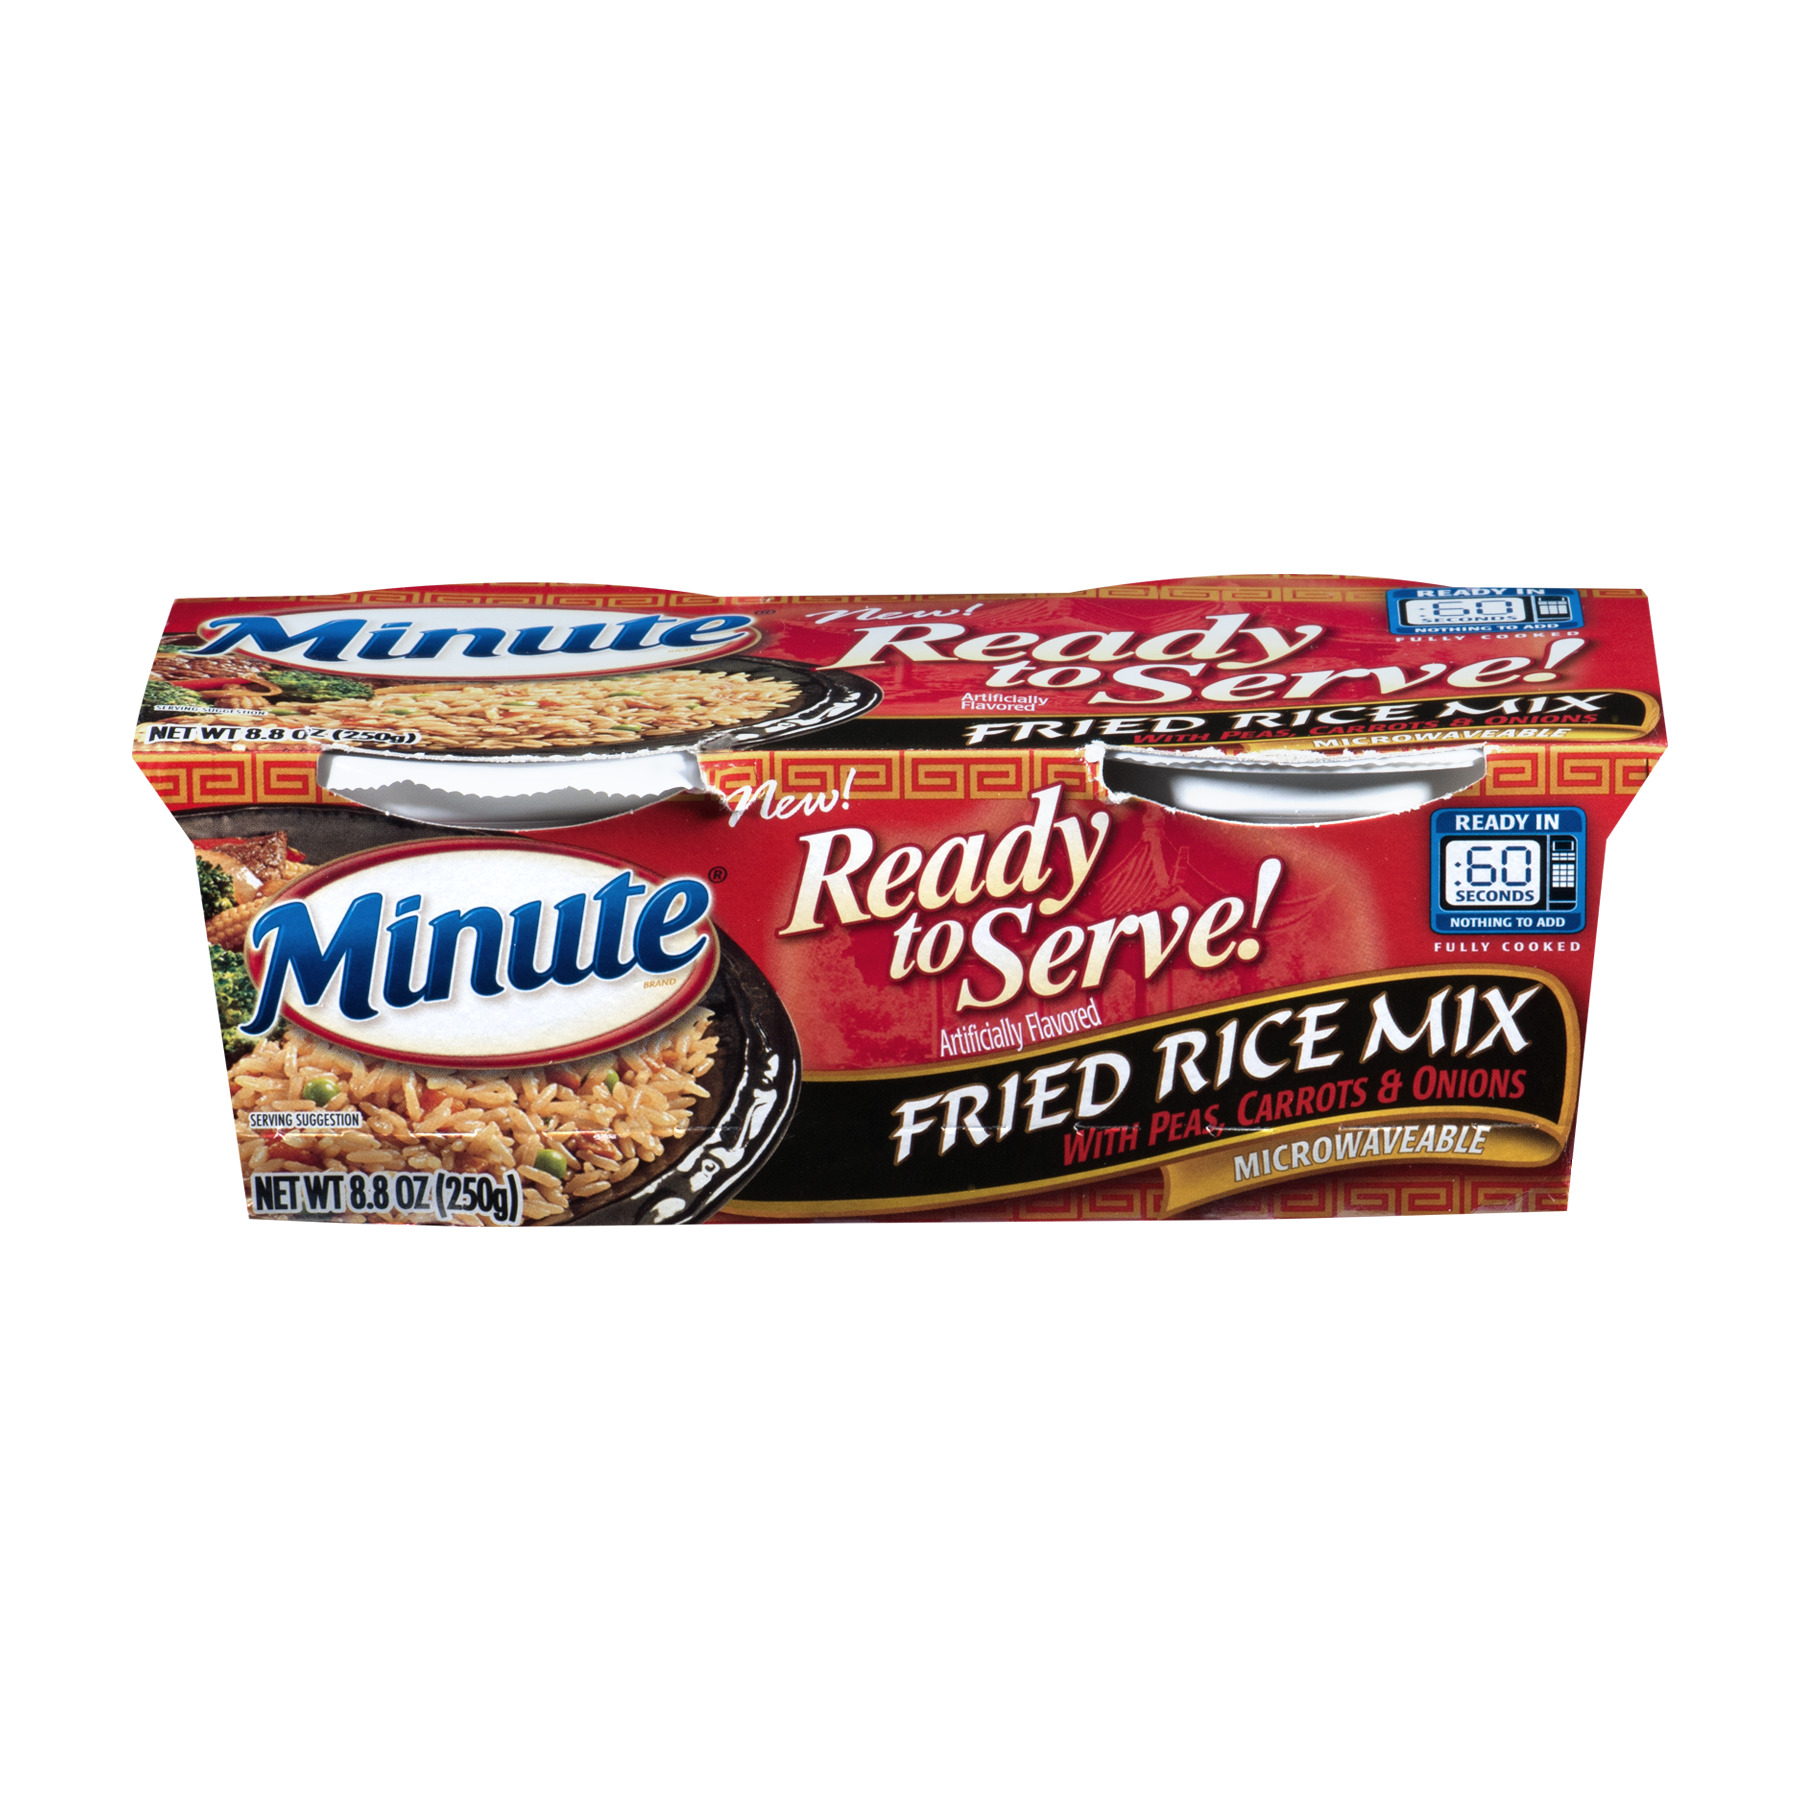 Minute Ready To Serve Fried Rice Mix with Peas Carrots & Onions 8.8 oz Pack